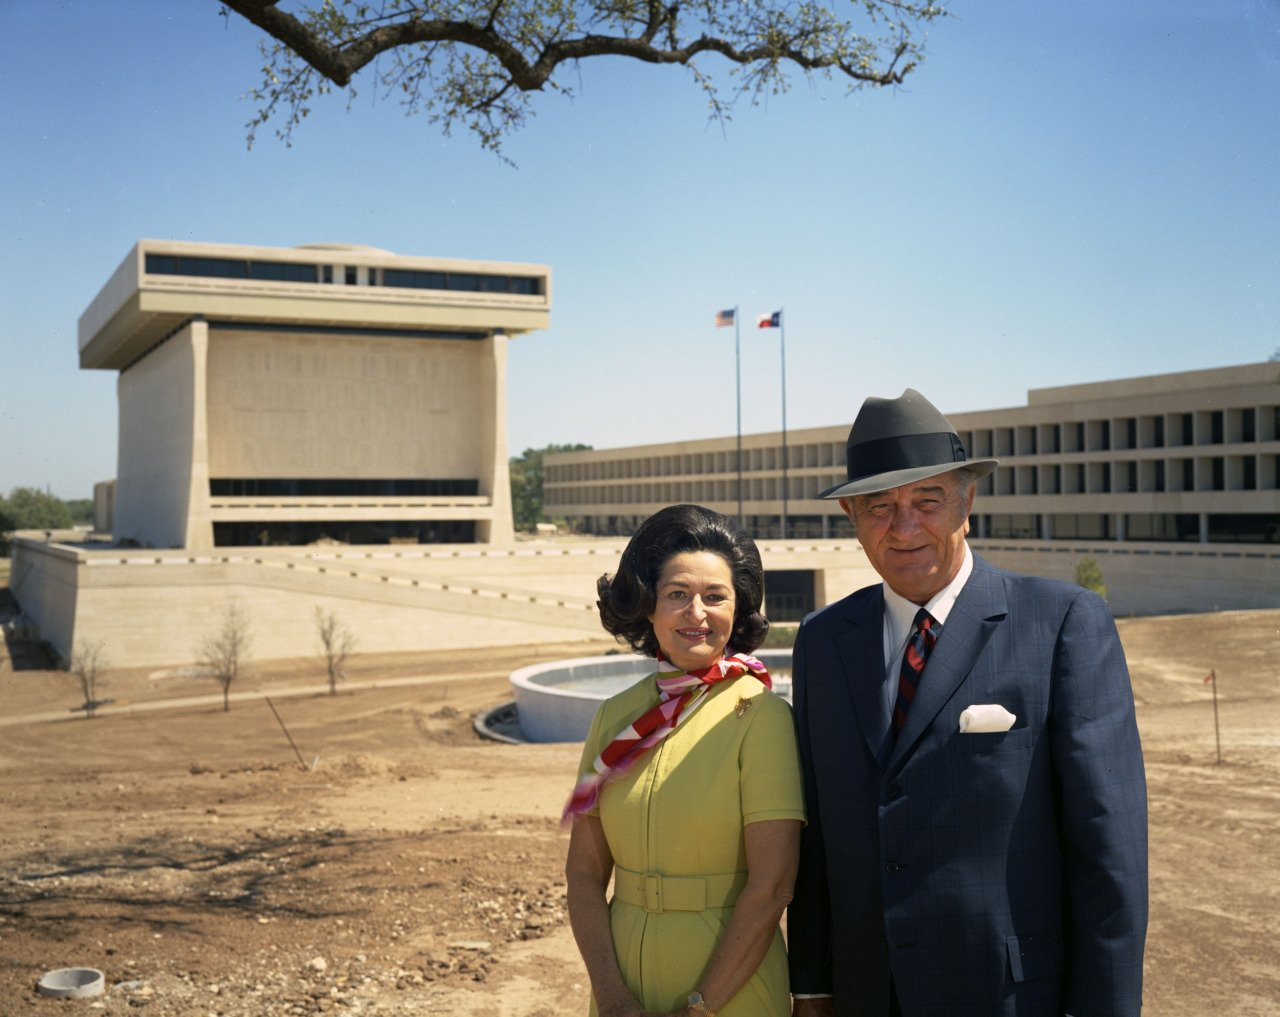 Lyndon and Lady Bird Johnson posing in front of the new Lyndon Baines Johnson Library and Museum both took an active role in planning